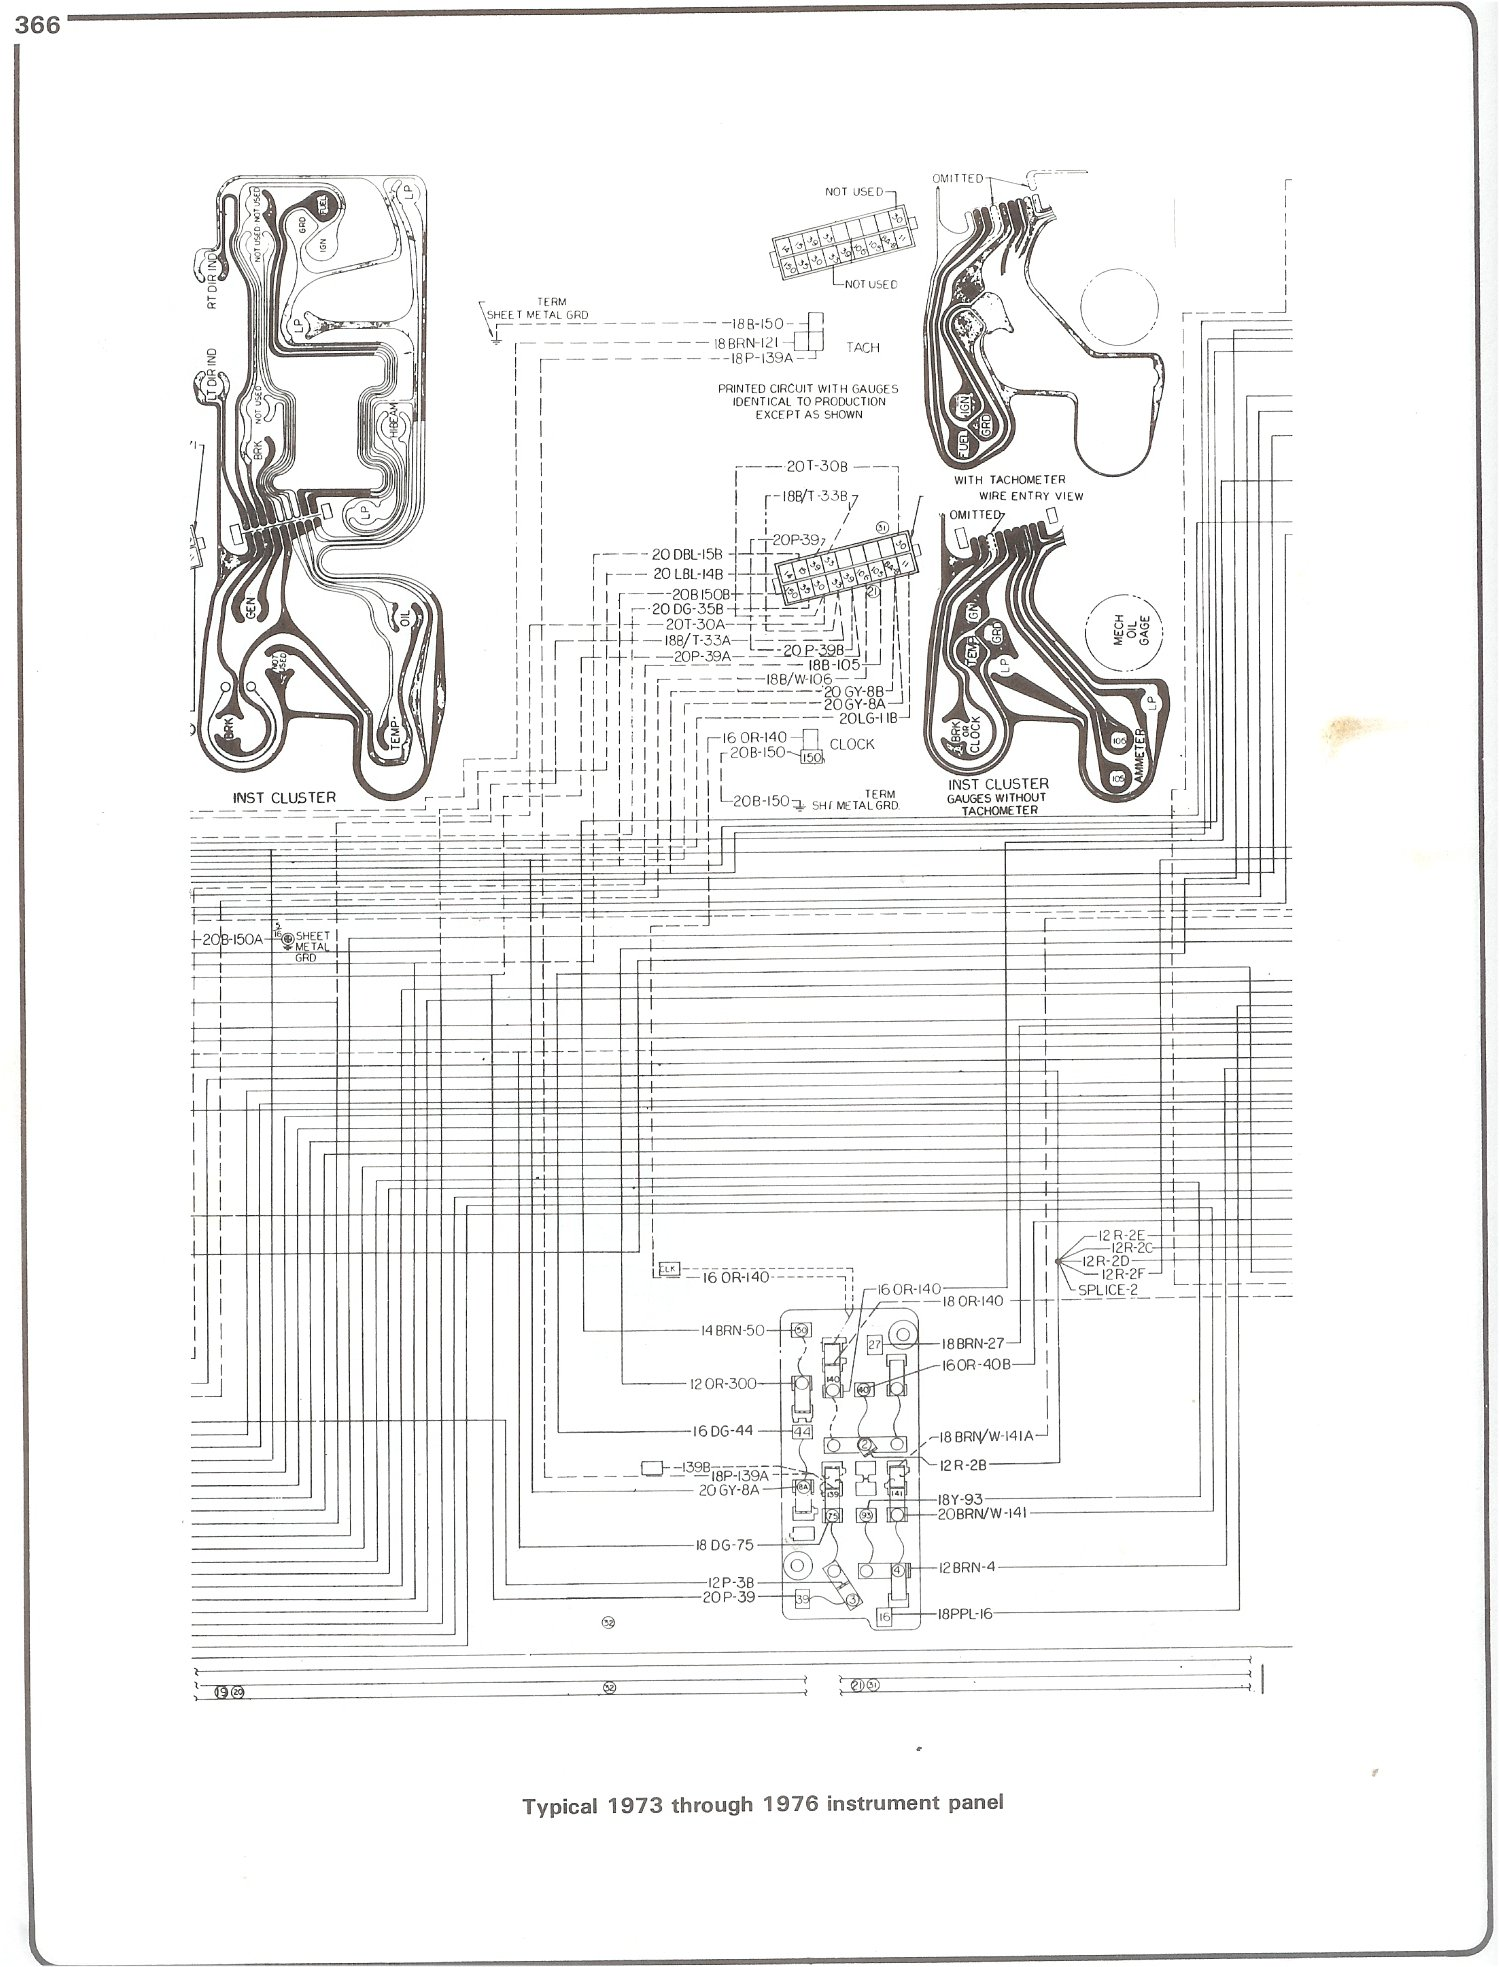 73 76_instrument complete 73 87 wiring diagrams 1978 chevy truck fuse box diagram at webbmarketing.co